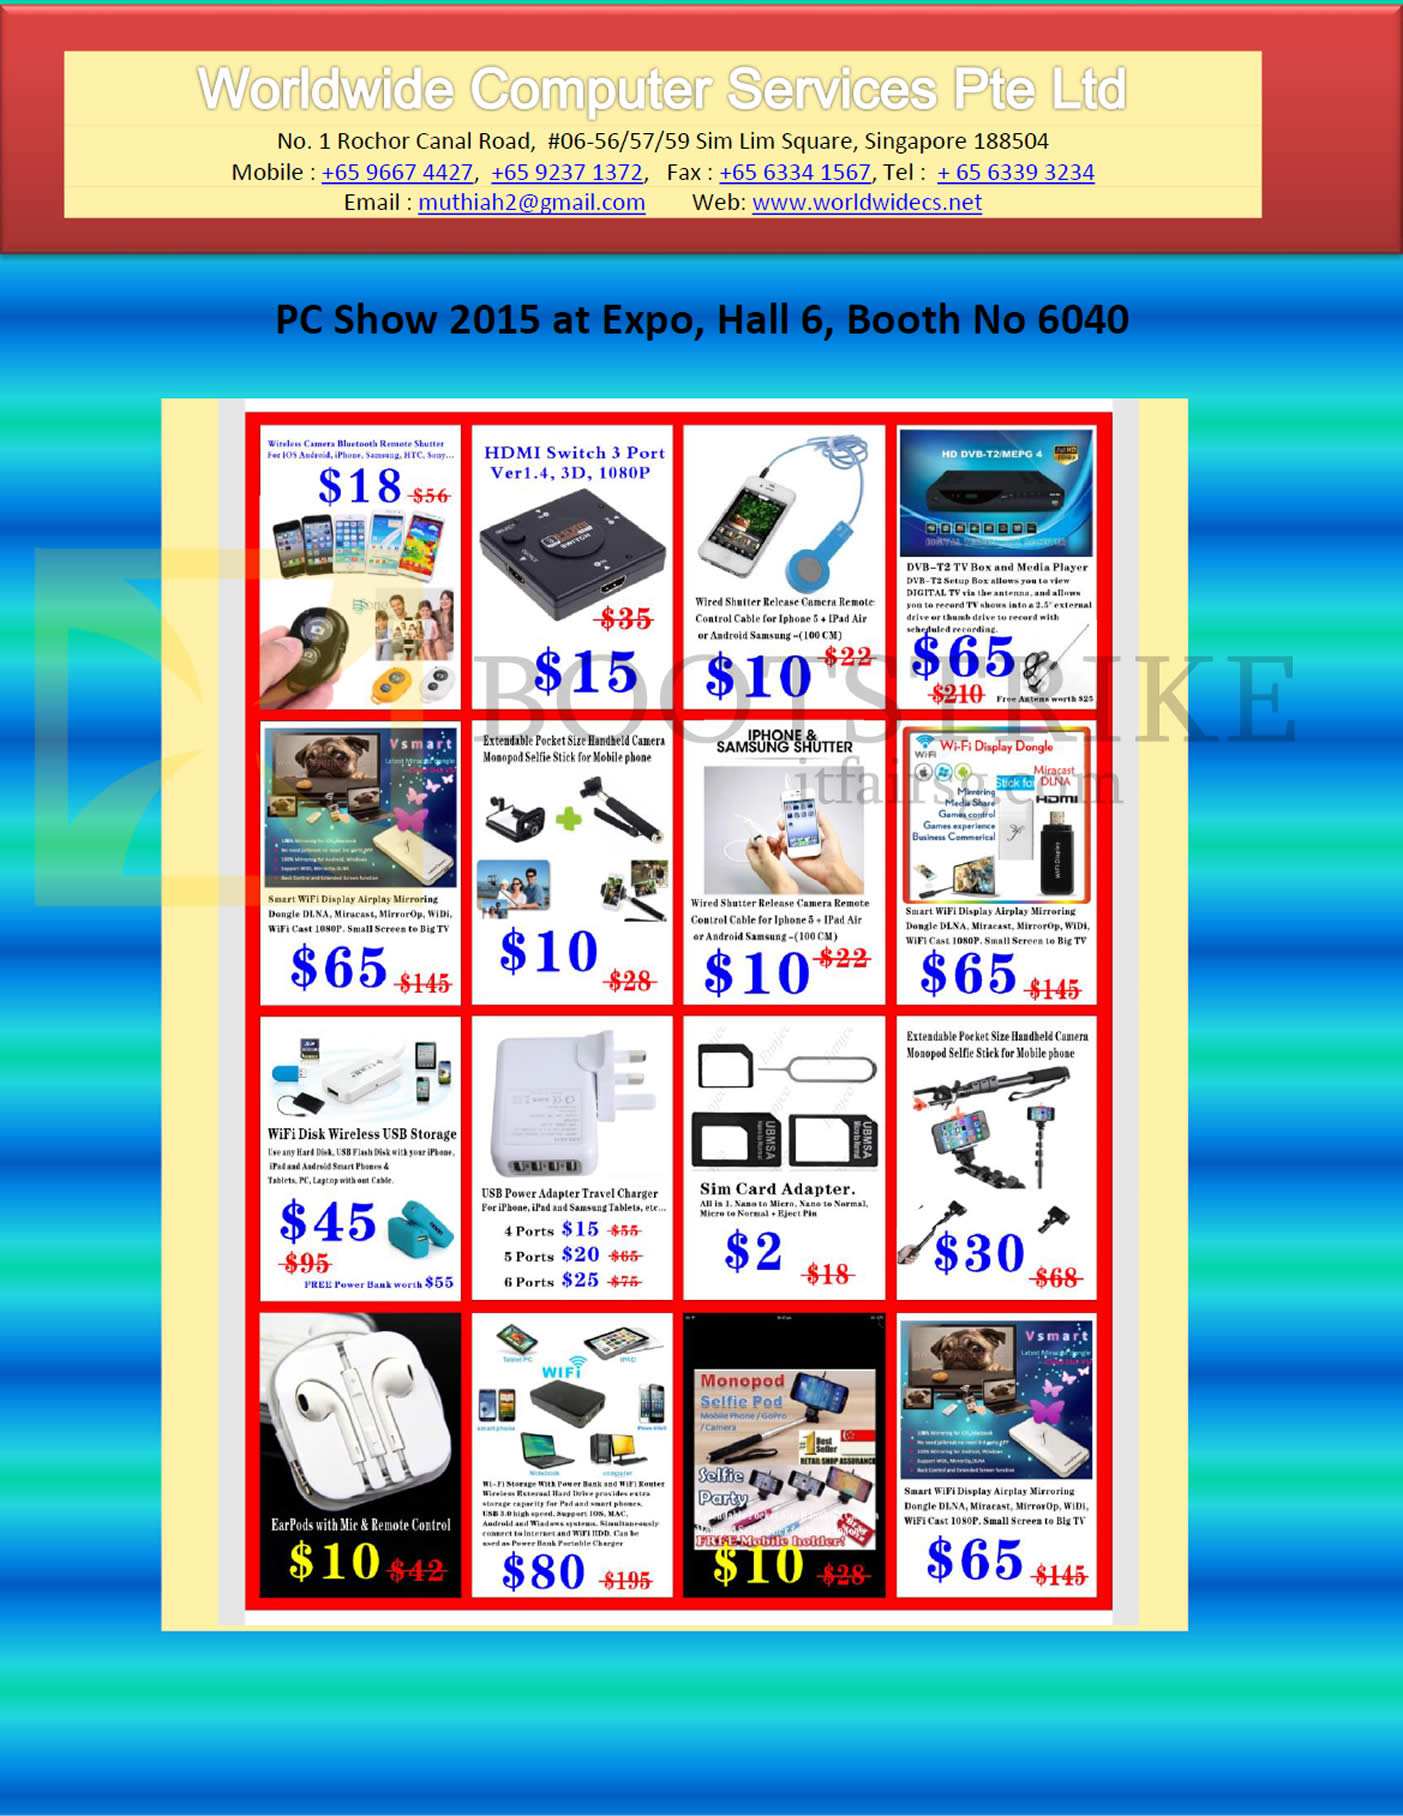 PC SHOW 2016 price list image brochure of Worldwide Computer Services Accessores HDMI Switch 3 Port, DVB-T2 TV Box, Iphone Shutter, Sim Card Adapter, Wifi Disk Wireless USB Storage, Wifi Display Dongle